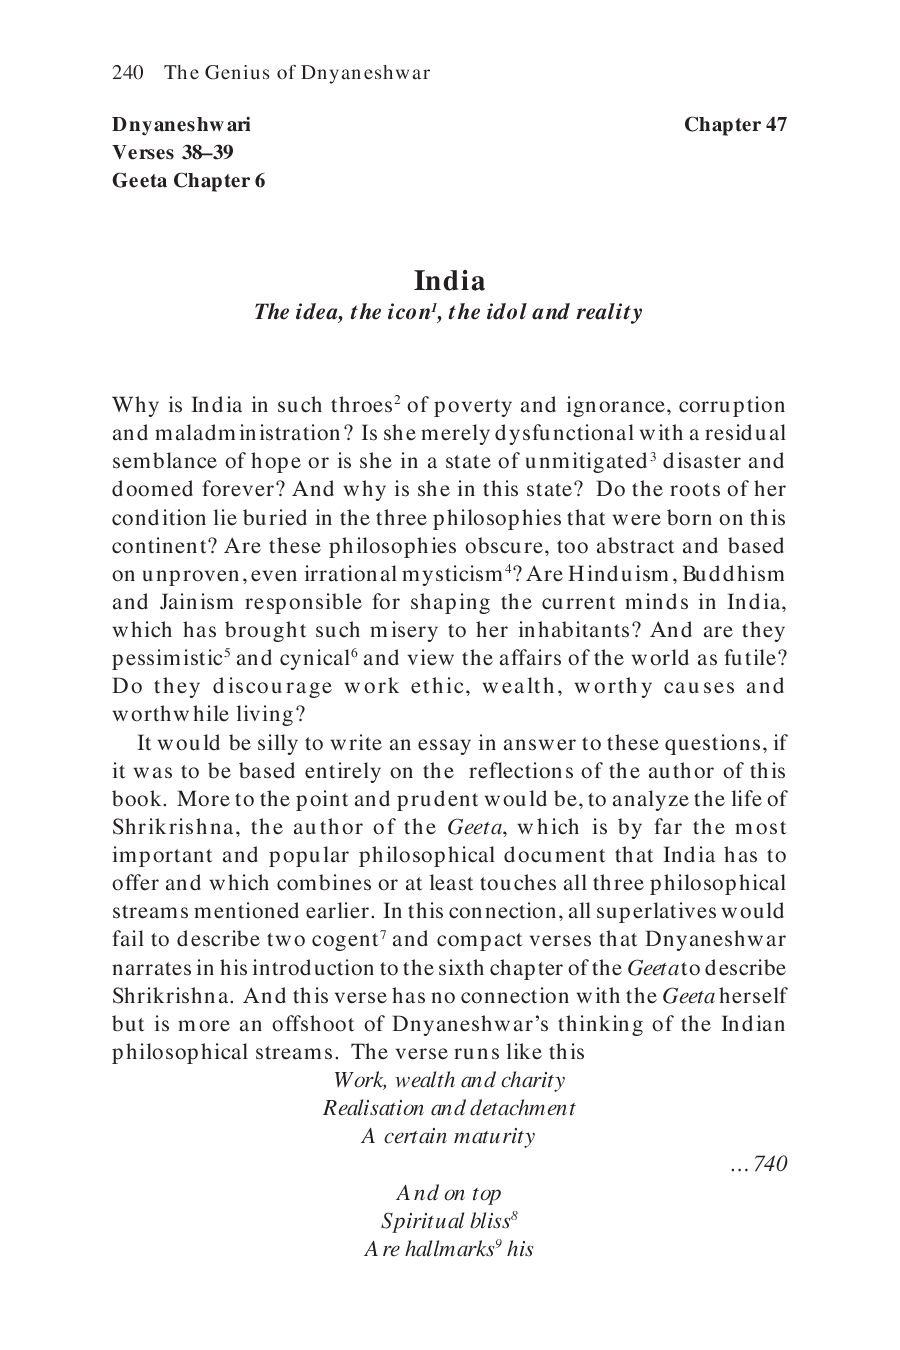 a dog essay how to write an essay about my pet essay in marathi  essay in marathi language on my favourite bird parrot essay topics essay on parrot bird in